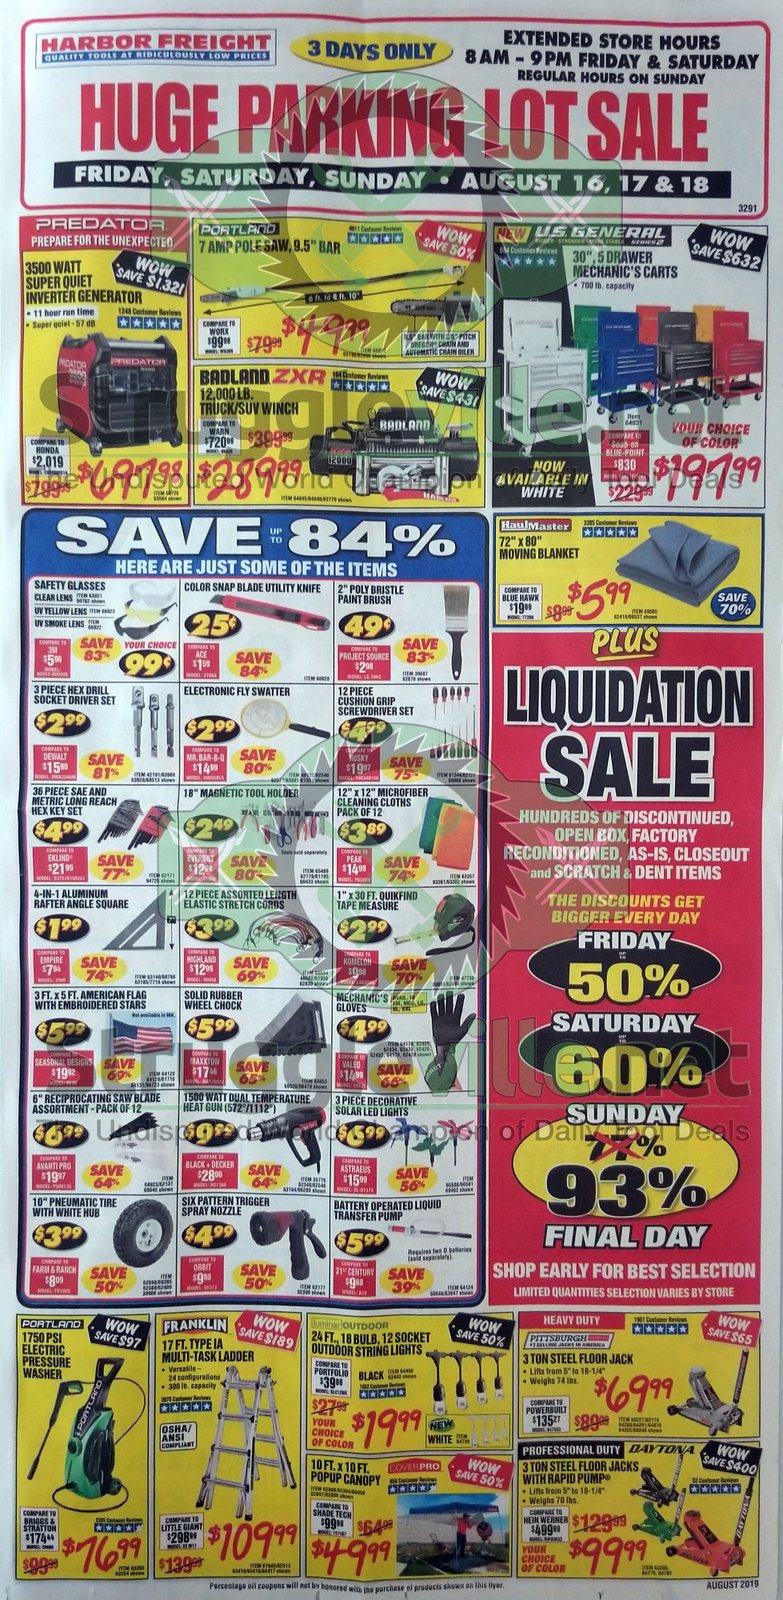 👉 Harbor Freight Parking Lot Sale Ad! (August 16th, 17th